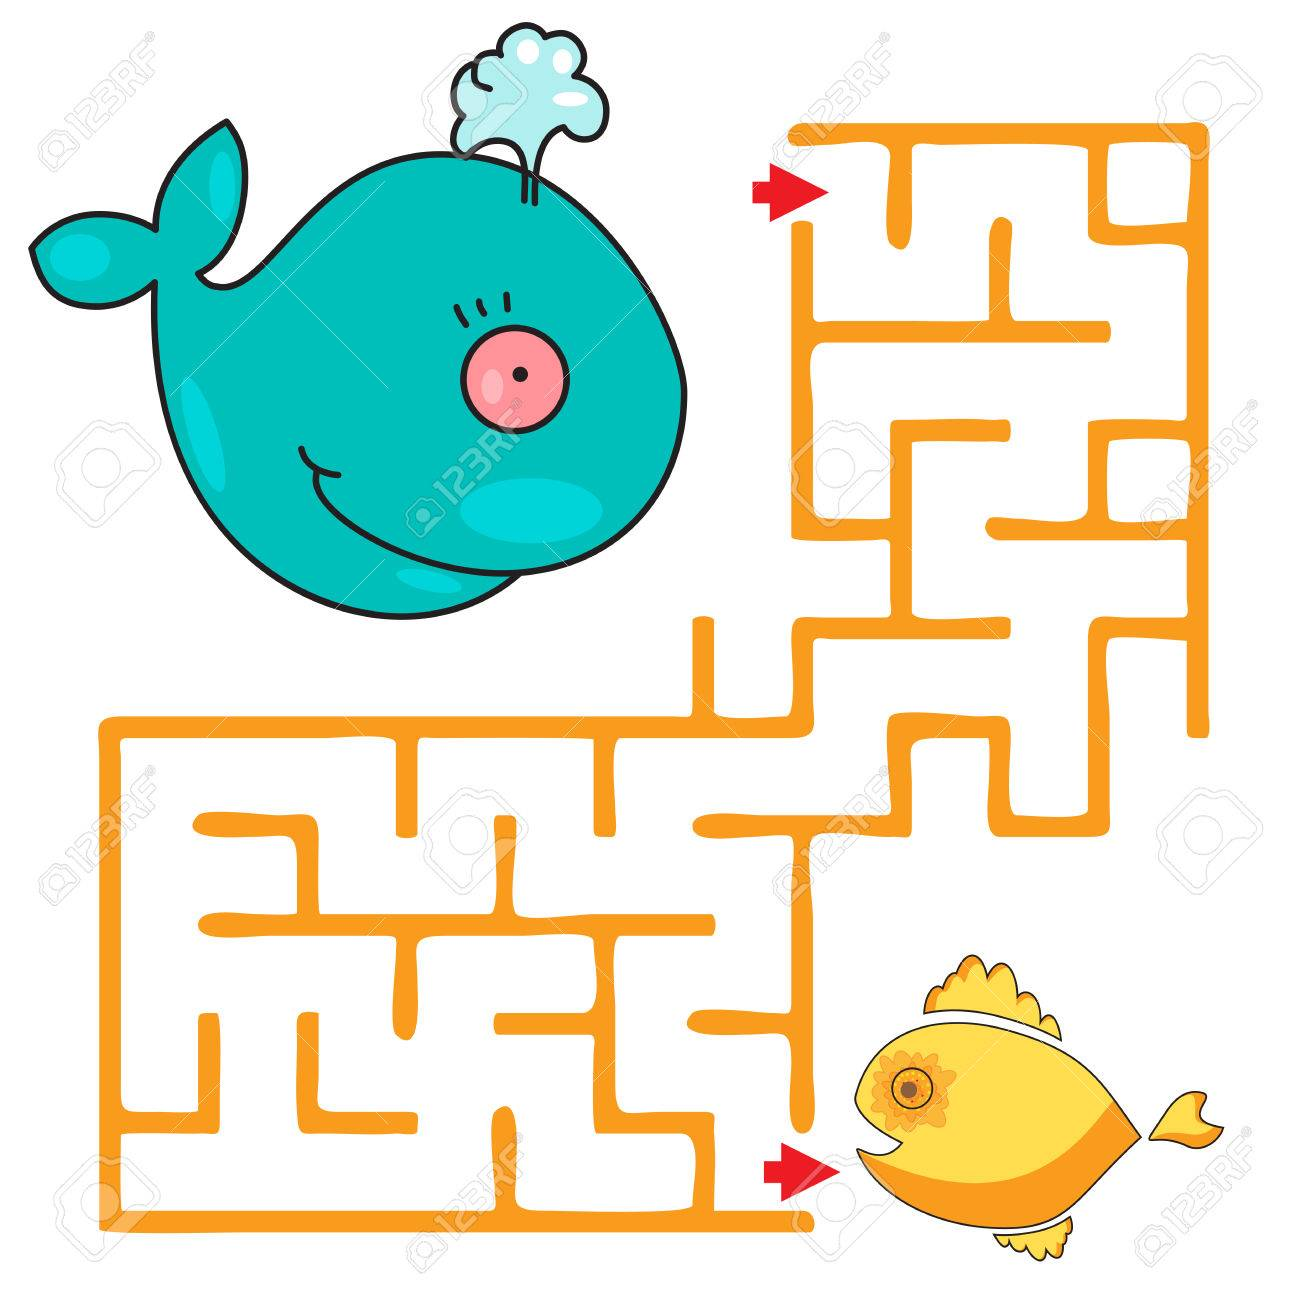 Funny maze game for child  kids games with cute whale